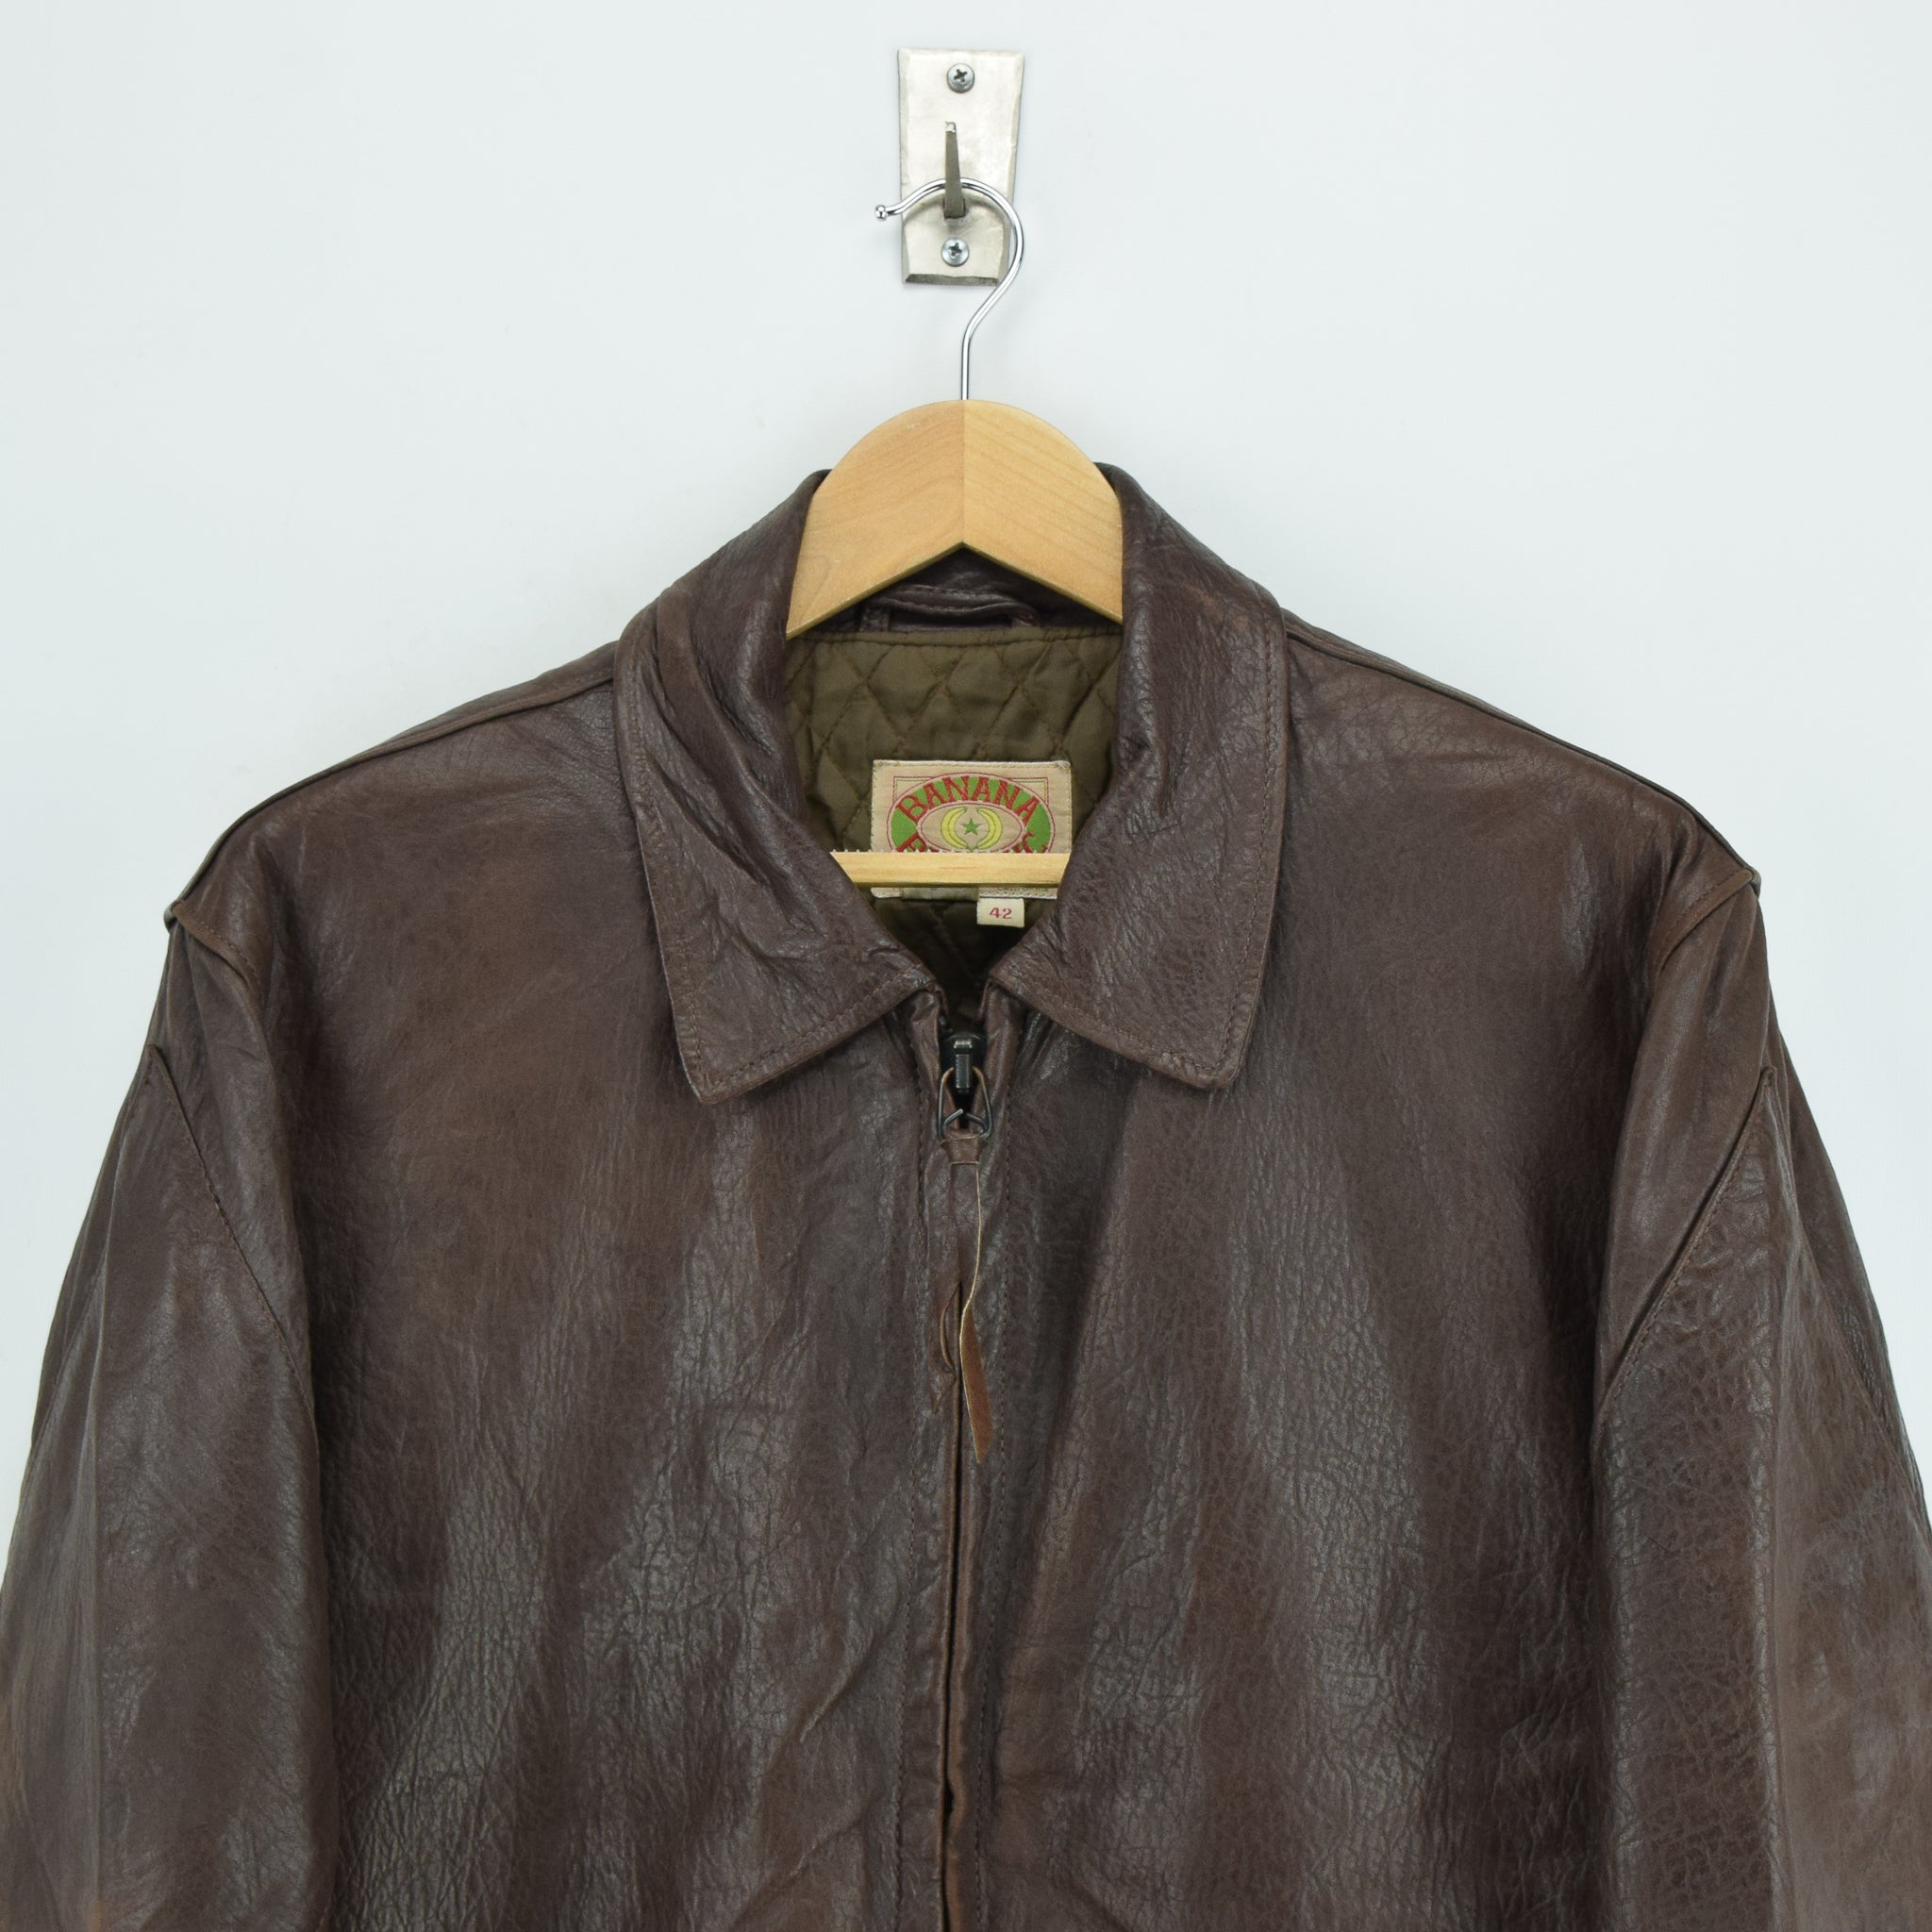 Vintage Banana Republic Brown Leather Bomber Biker Style Jacket Made in USA L chest